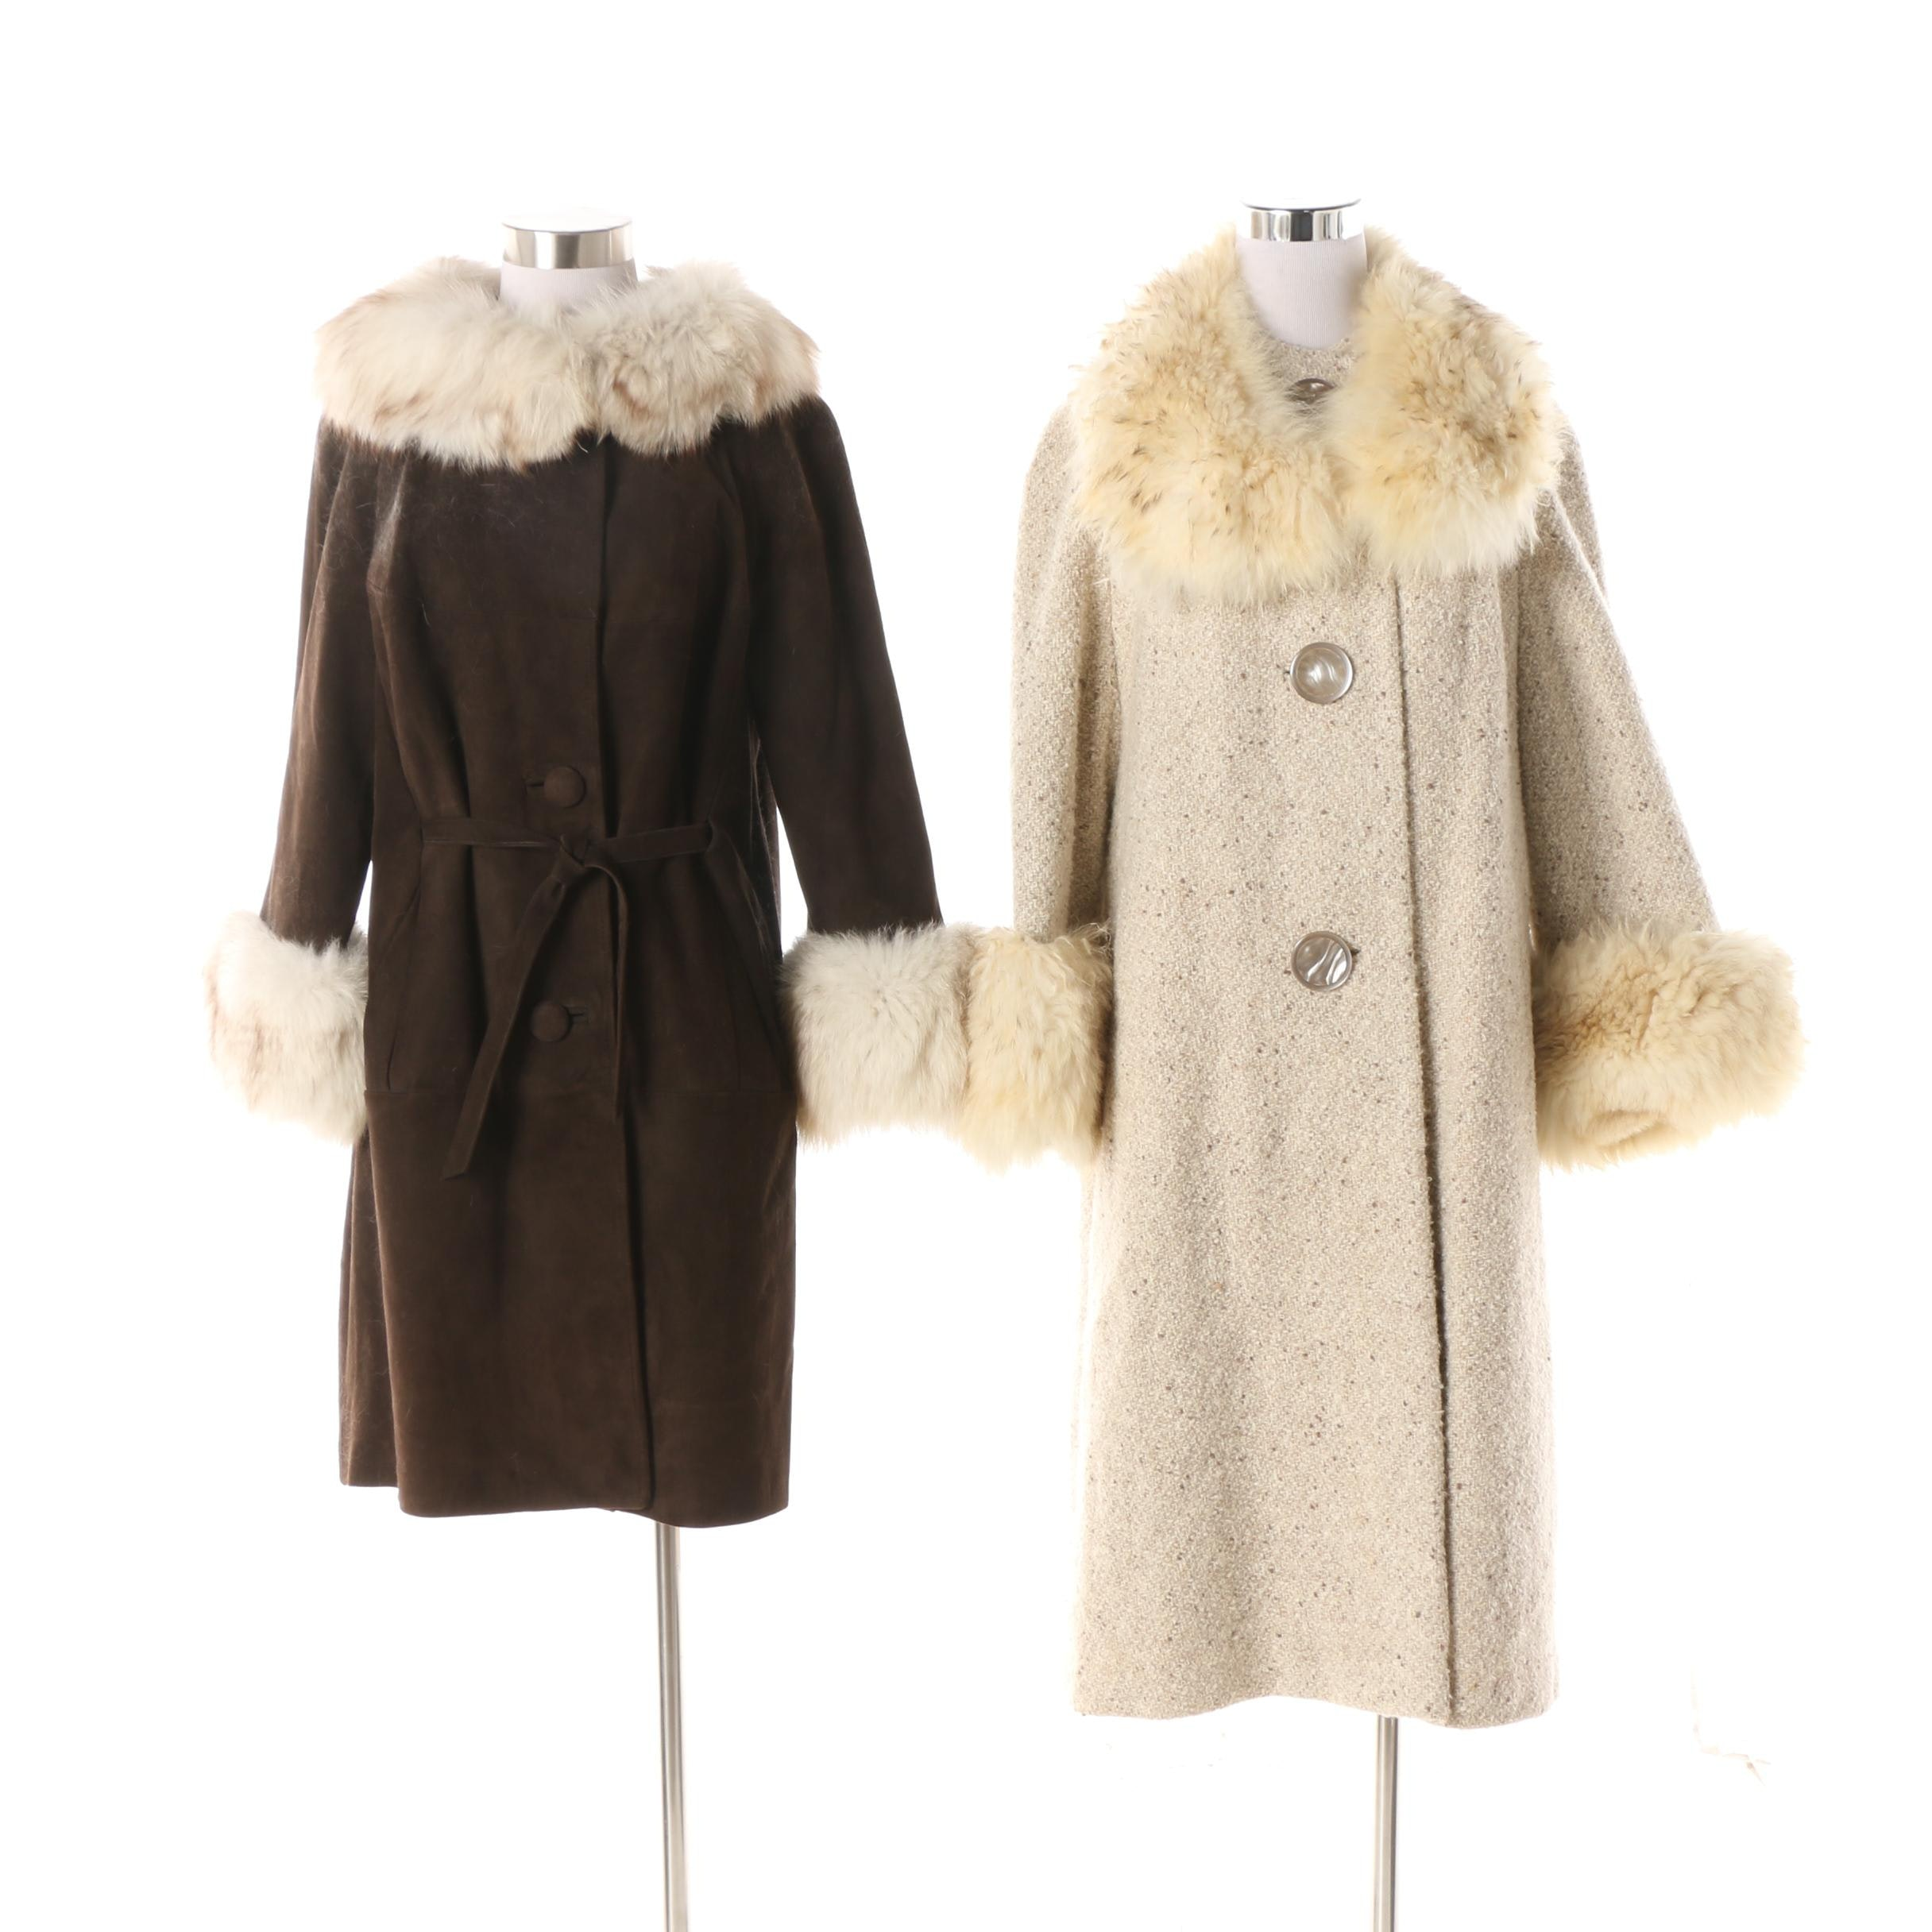 Women's Vintage Suede and Wool Dress Coats with Fox Fur Trim